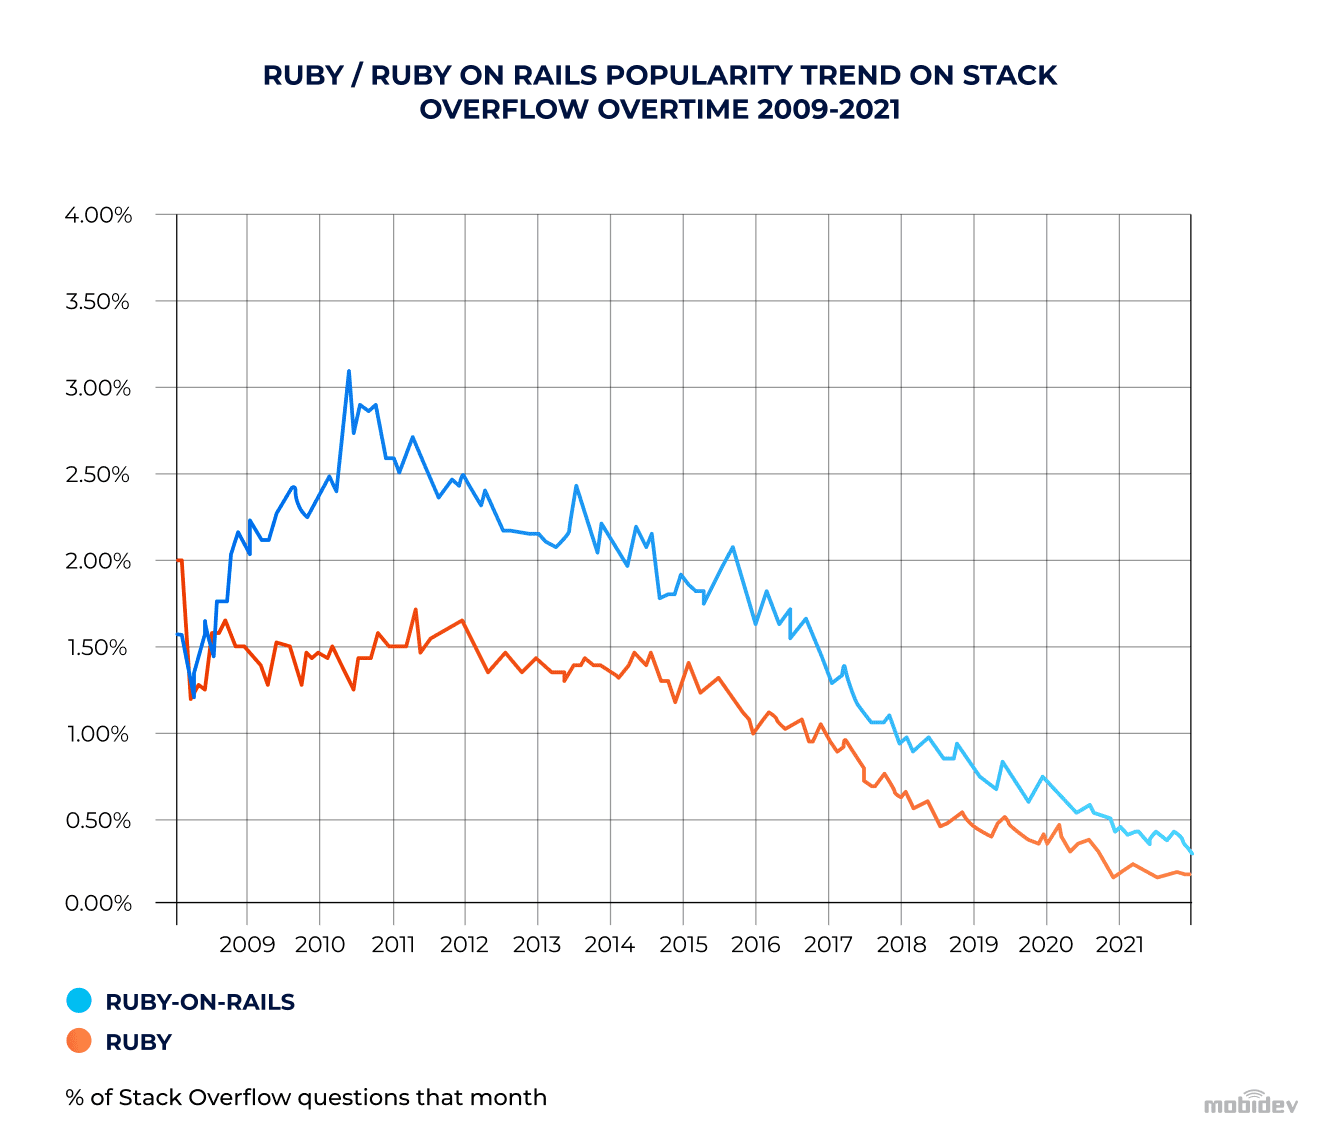 Ruby on Rails popularity trend on StackOverflow in 2009-2021